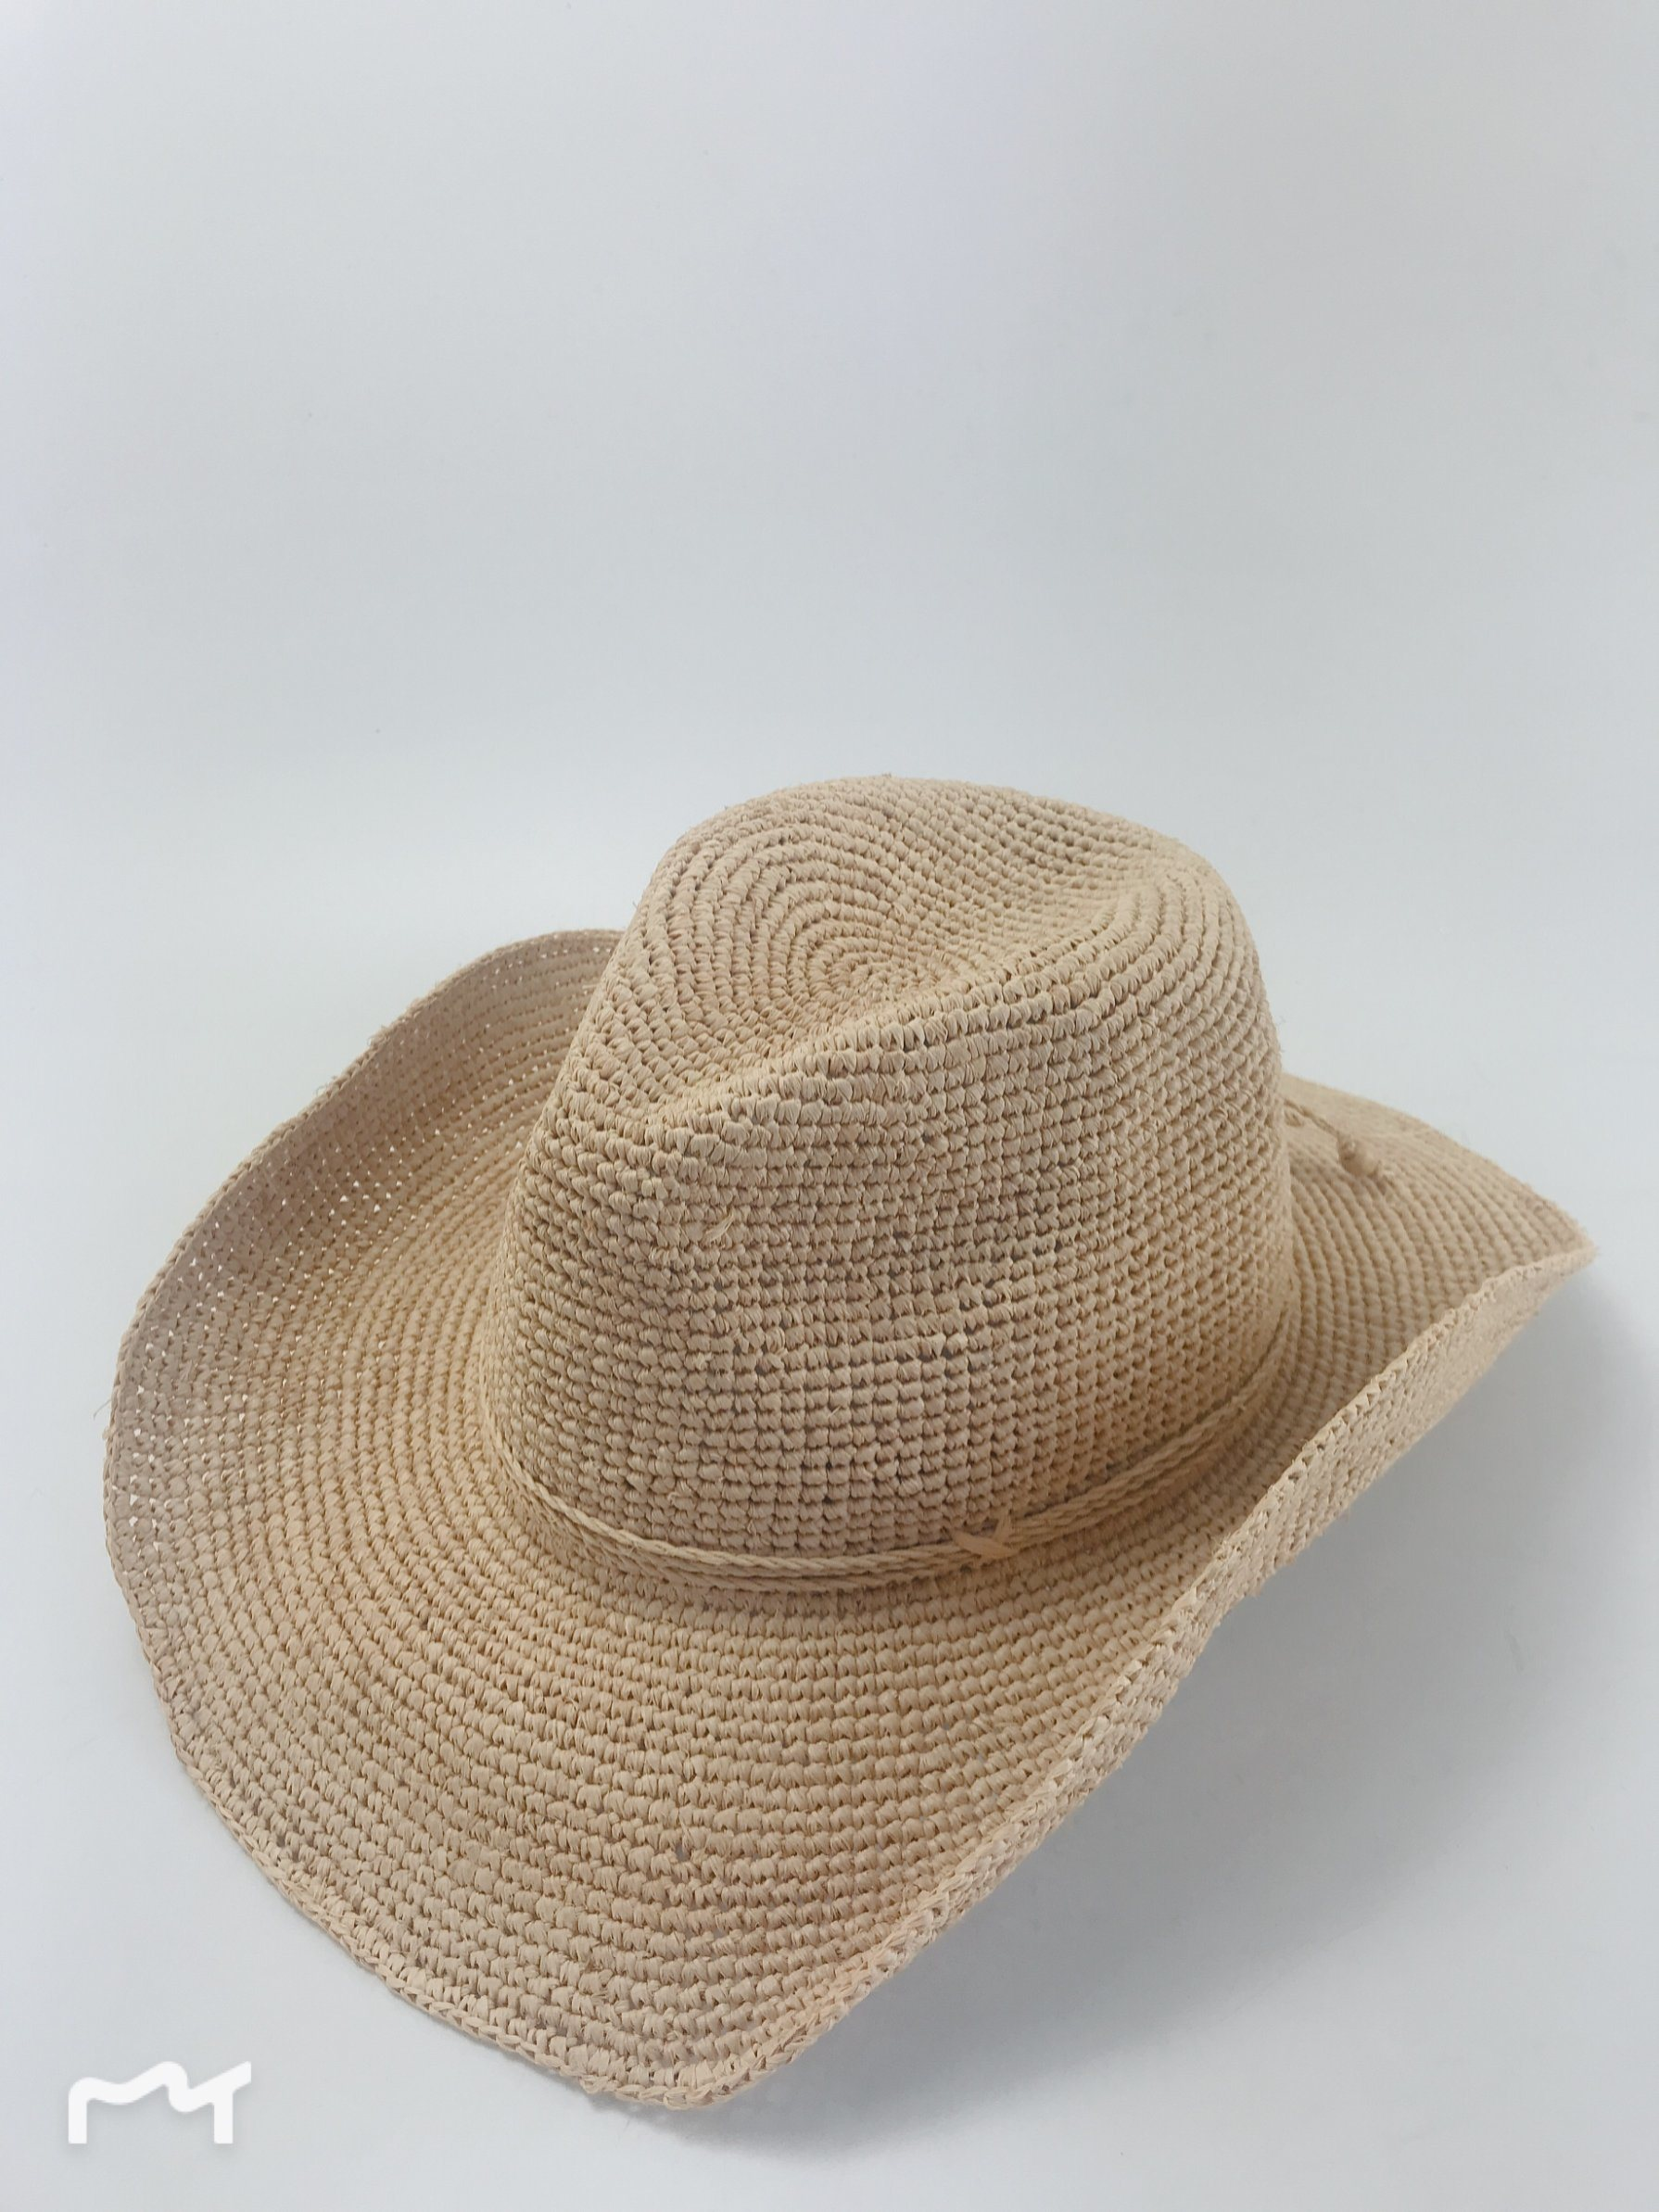 2846aae25 China 100% Natural Crocheted Raffia Straw with Beads Trim Cowboy Hat ...